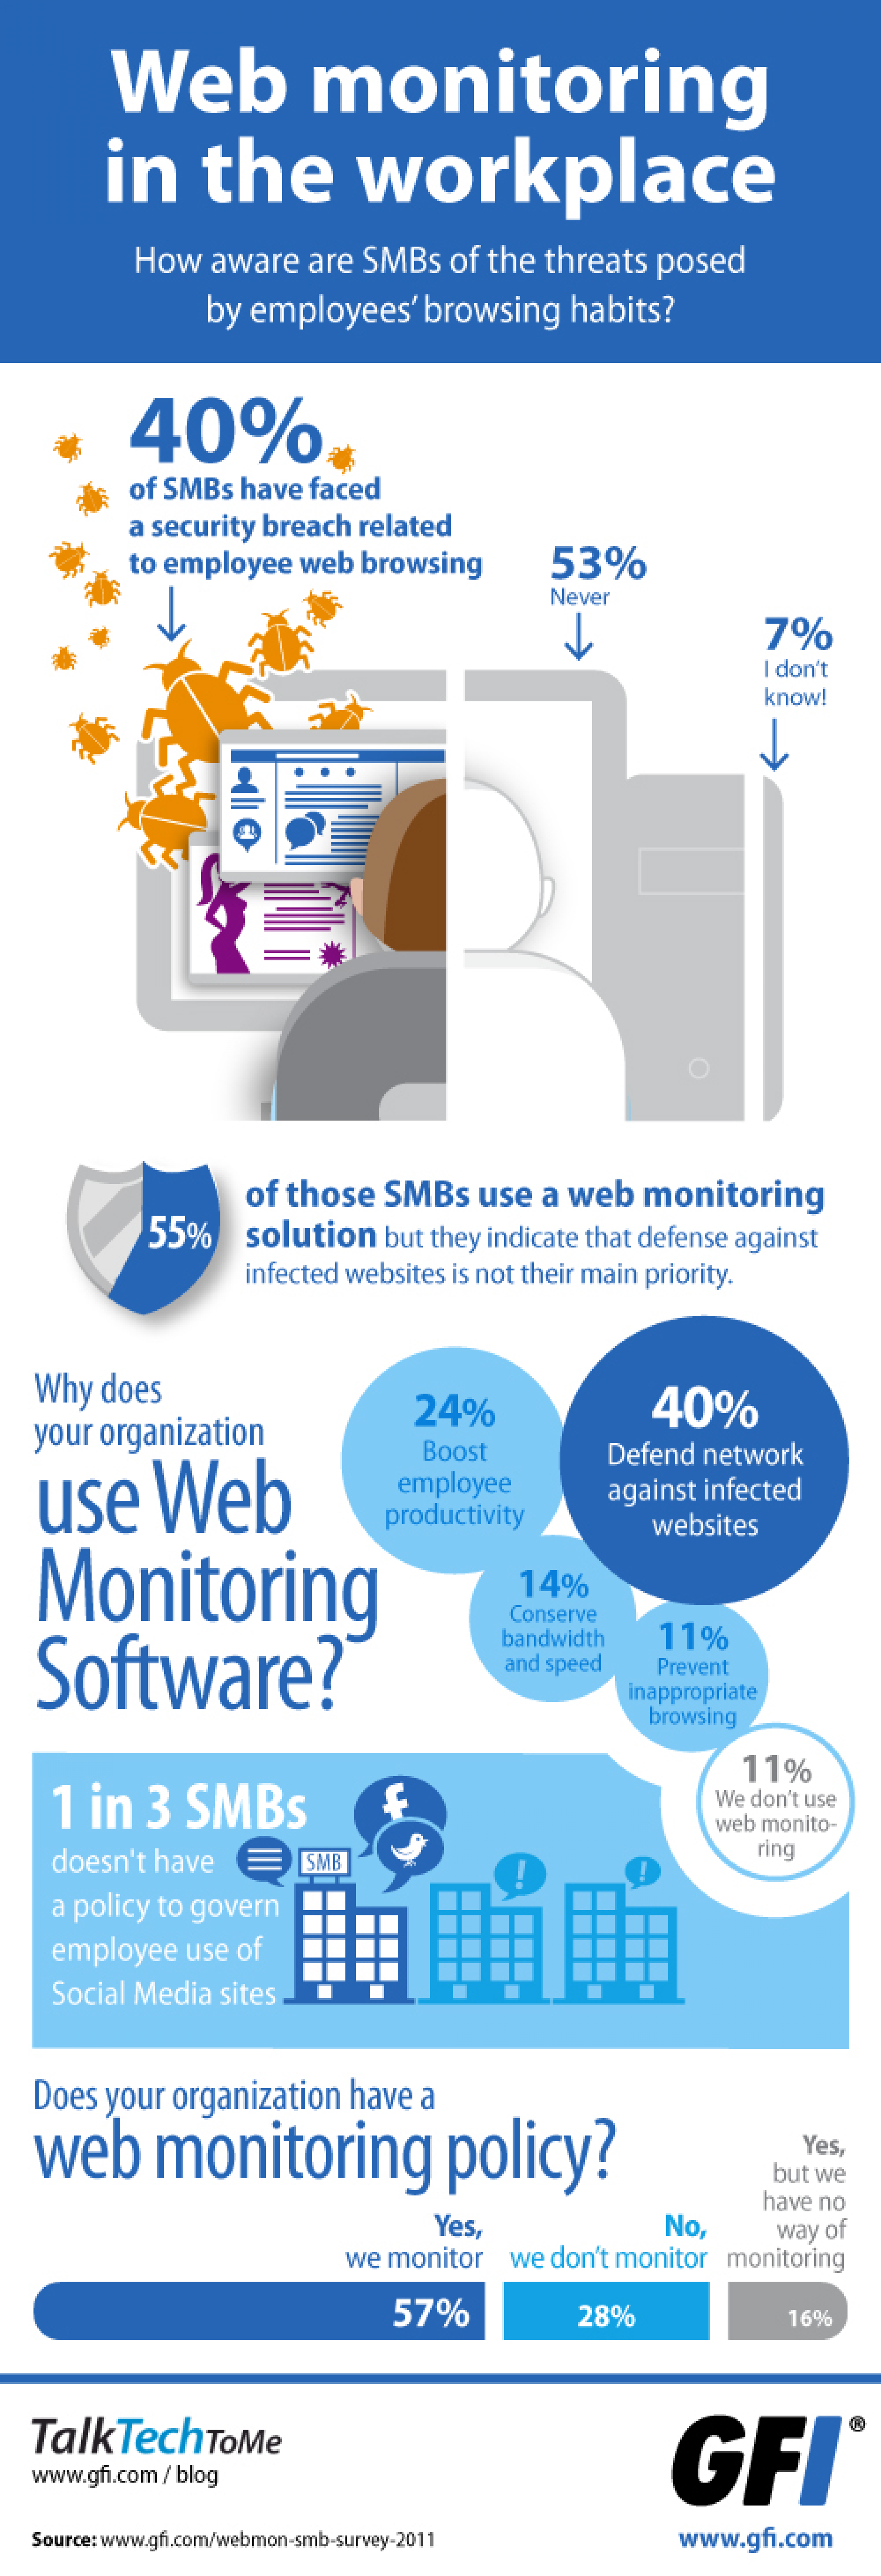 Web monitoring in the workplace Infographic